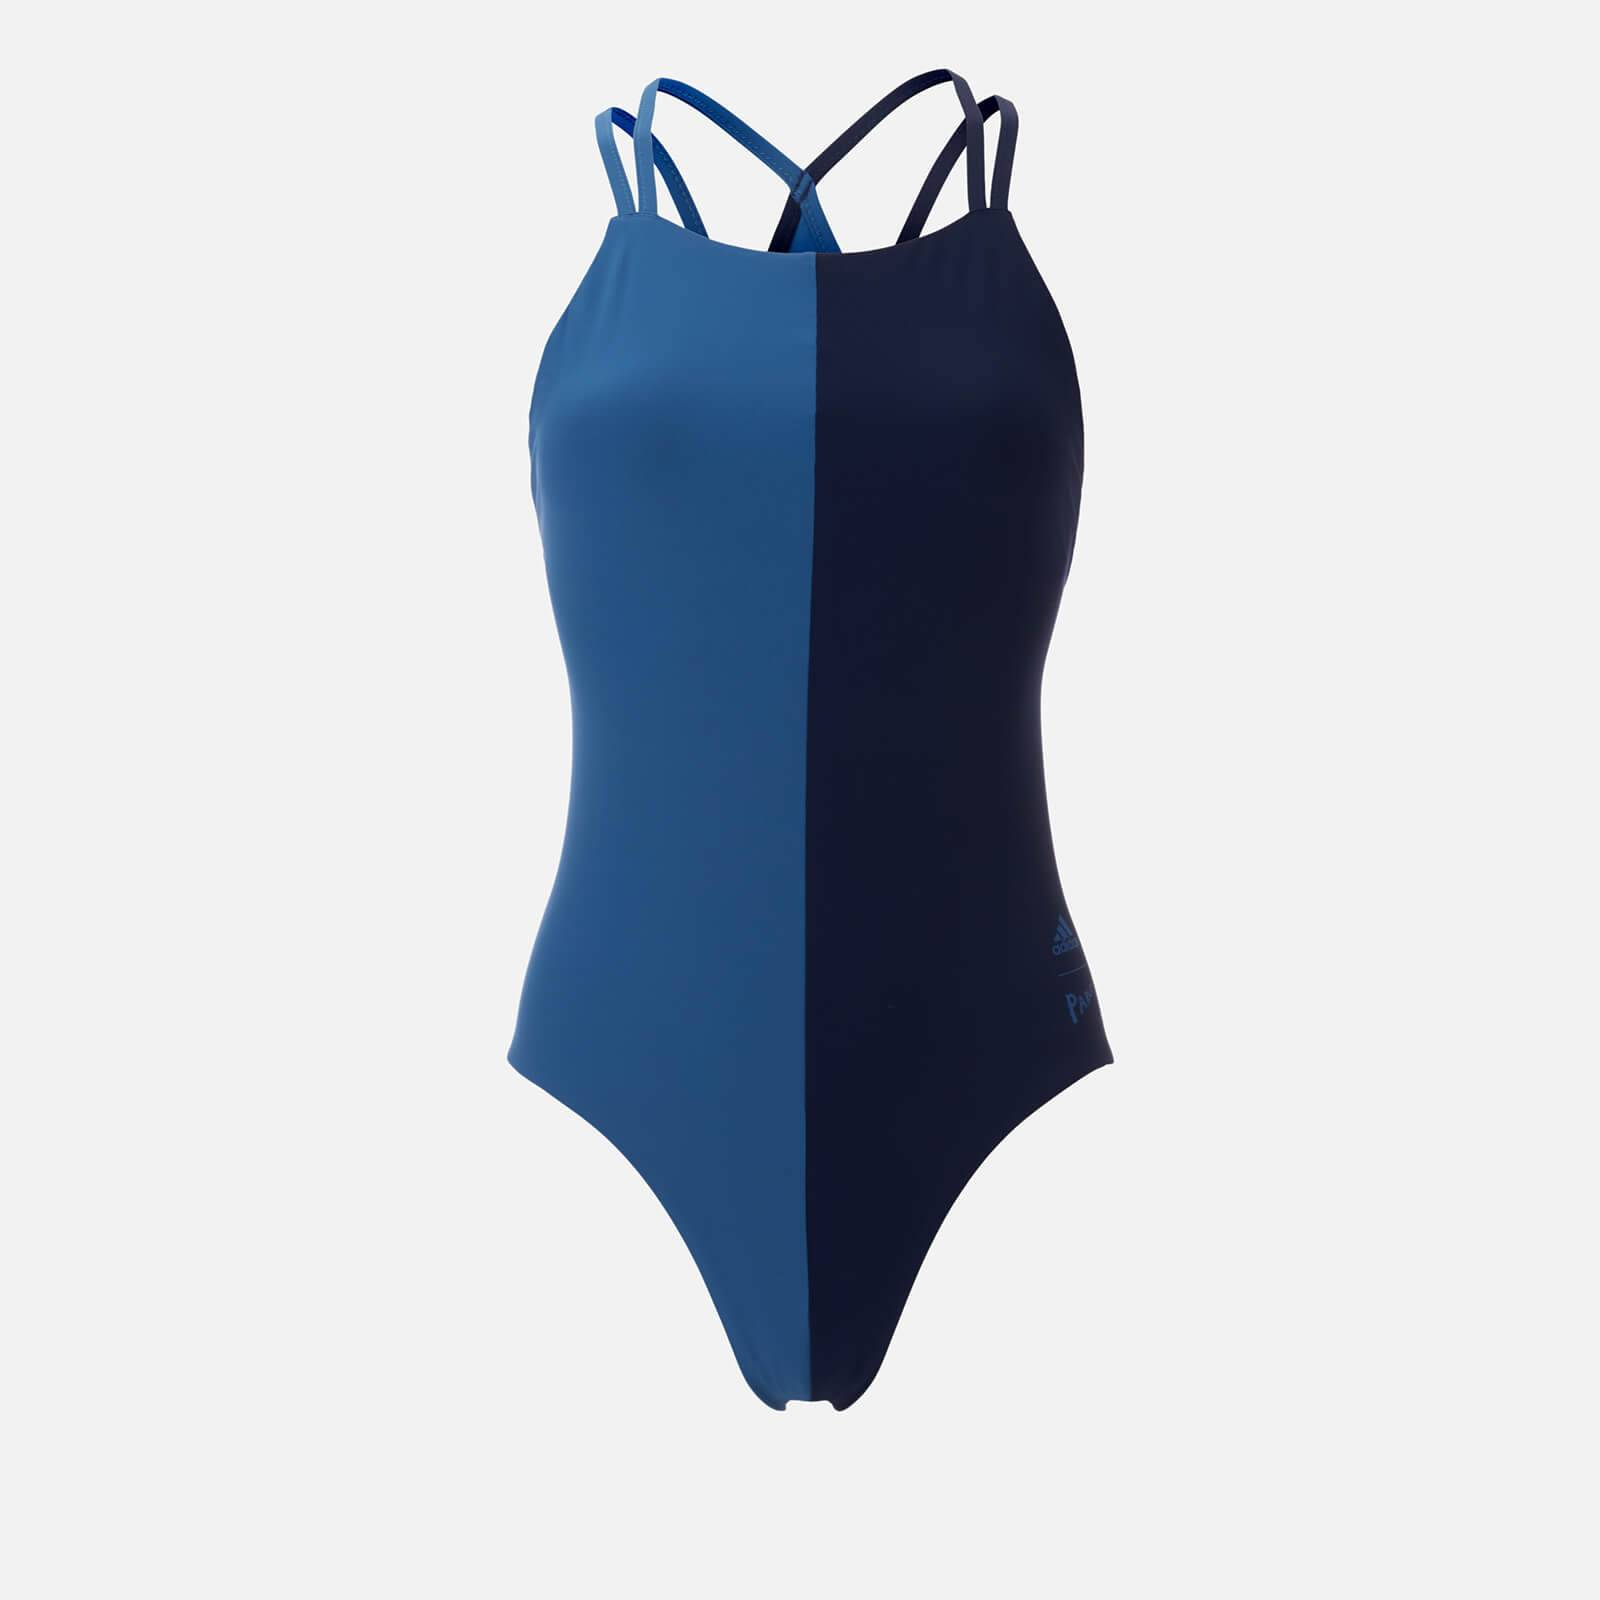 adidas Women's Fit Parley Suit - Blue/Black - 34 Inch (Chest Size) - Multi